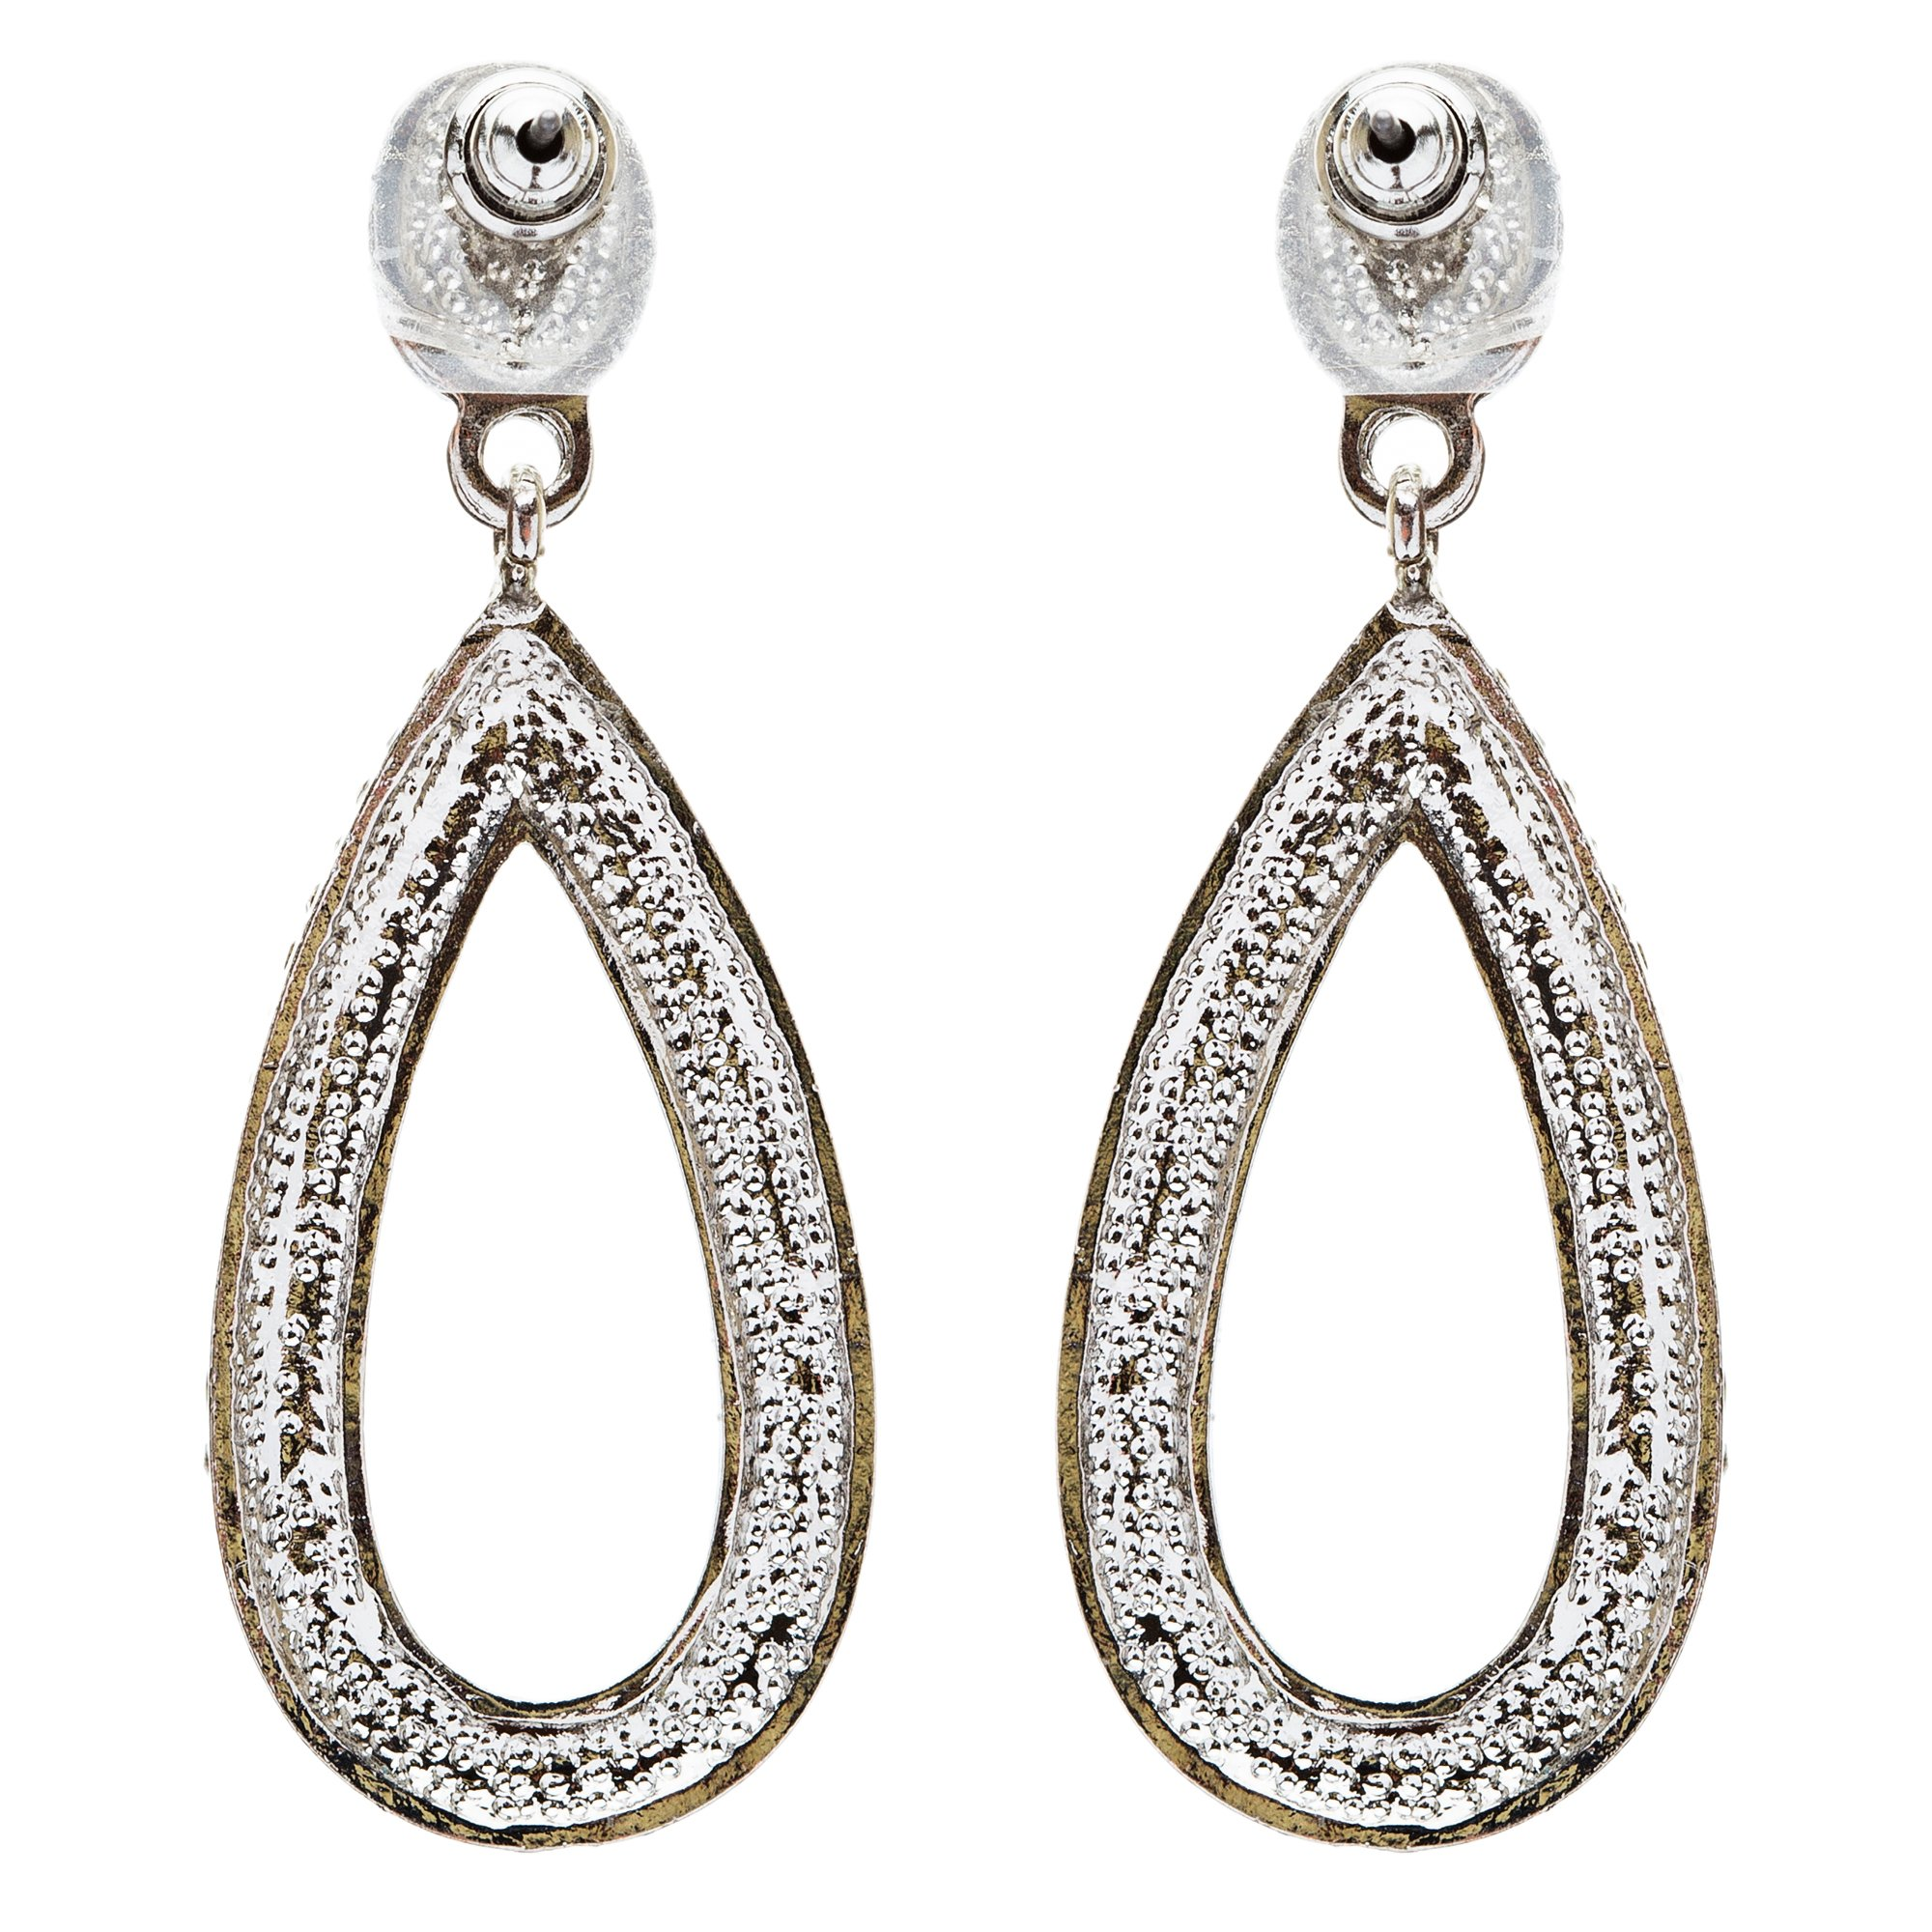 Bridal Wedding Jewelry Crystal Rhinestone Charming Tear Drop Earrings E735Silver by Accessoriesforever (Image #2)